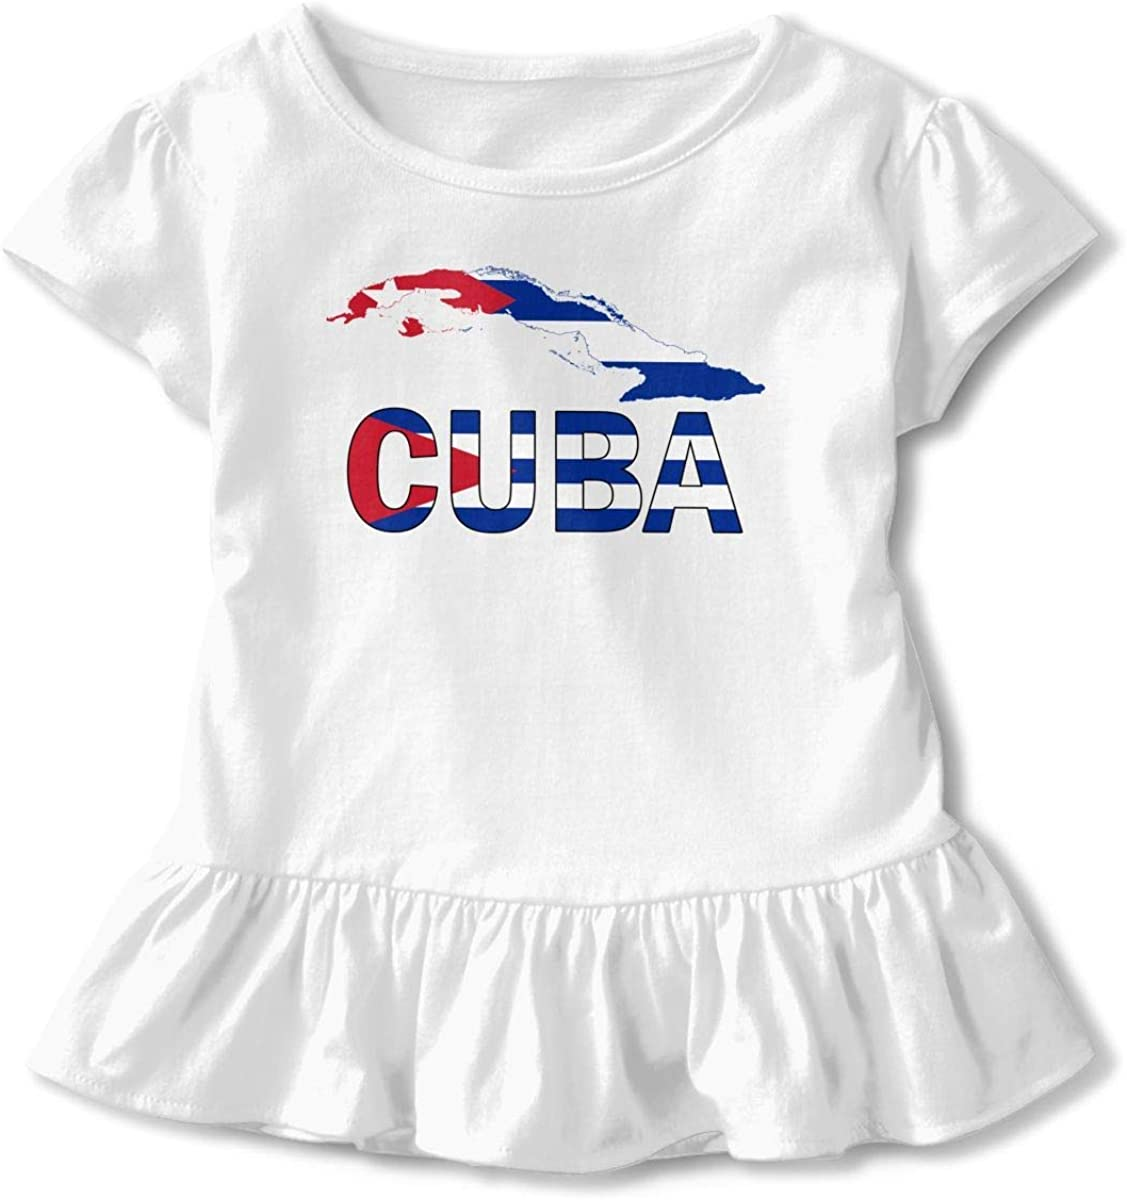 HelloWorlduk Toddler Baby Girl Cuba Map Flag and Text Funny Short Sleeve Cotton T Shirts Basic Tops Tee Clothes